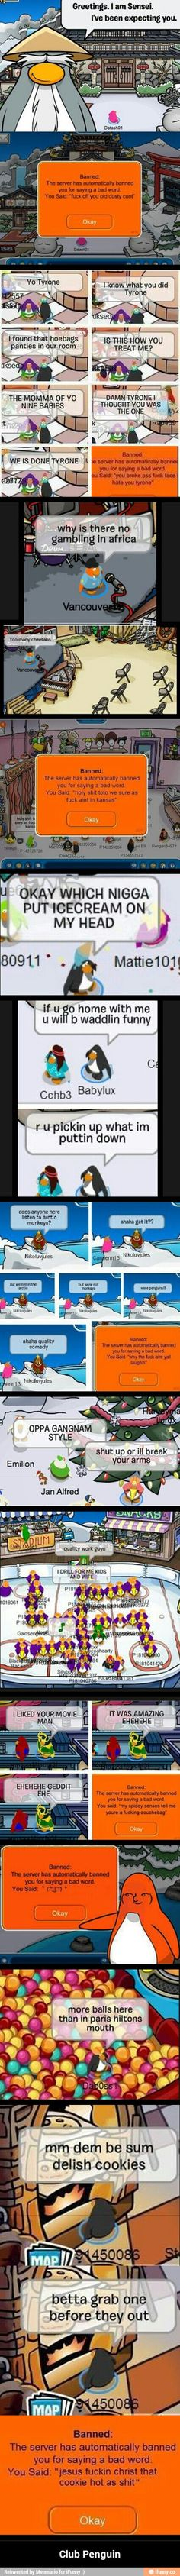 "All Club Penguin in one pic. shit I just got banned 'cause sayin' ""Club Penguin"" Club Penguin Funny, Funny Club, Tumblr Funny, Funny Memes, Hilarious, Jokes, Really Funny, The Funny, Funny Posts"